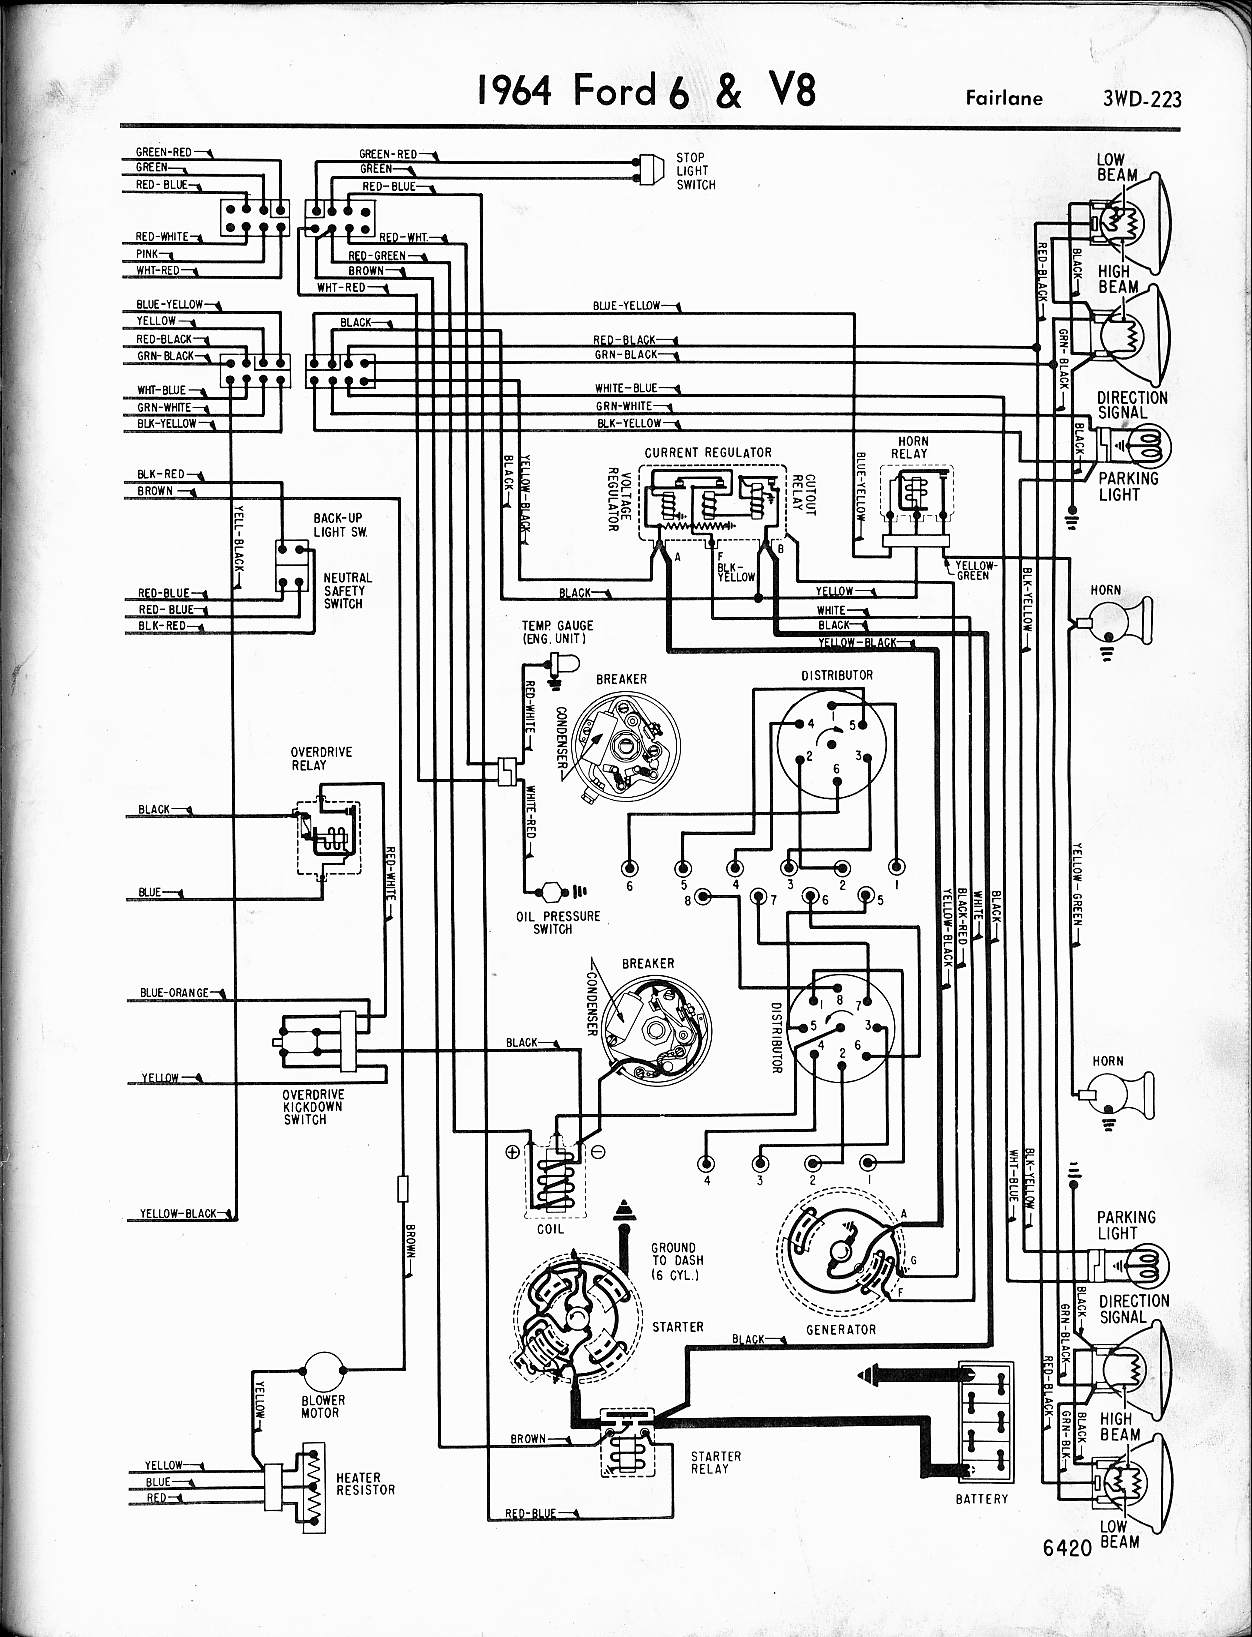 MWire5765 223 1964 1966 thunderbirfd wiring schematic 66 mustang wiring diagram draw simple wiring diagrams at n-0.co